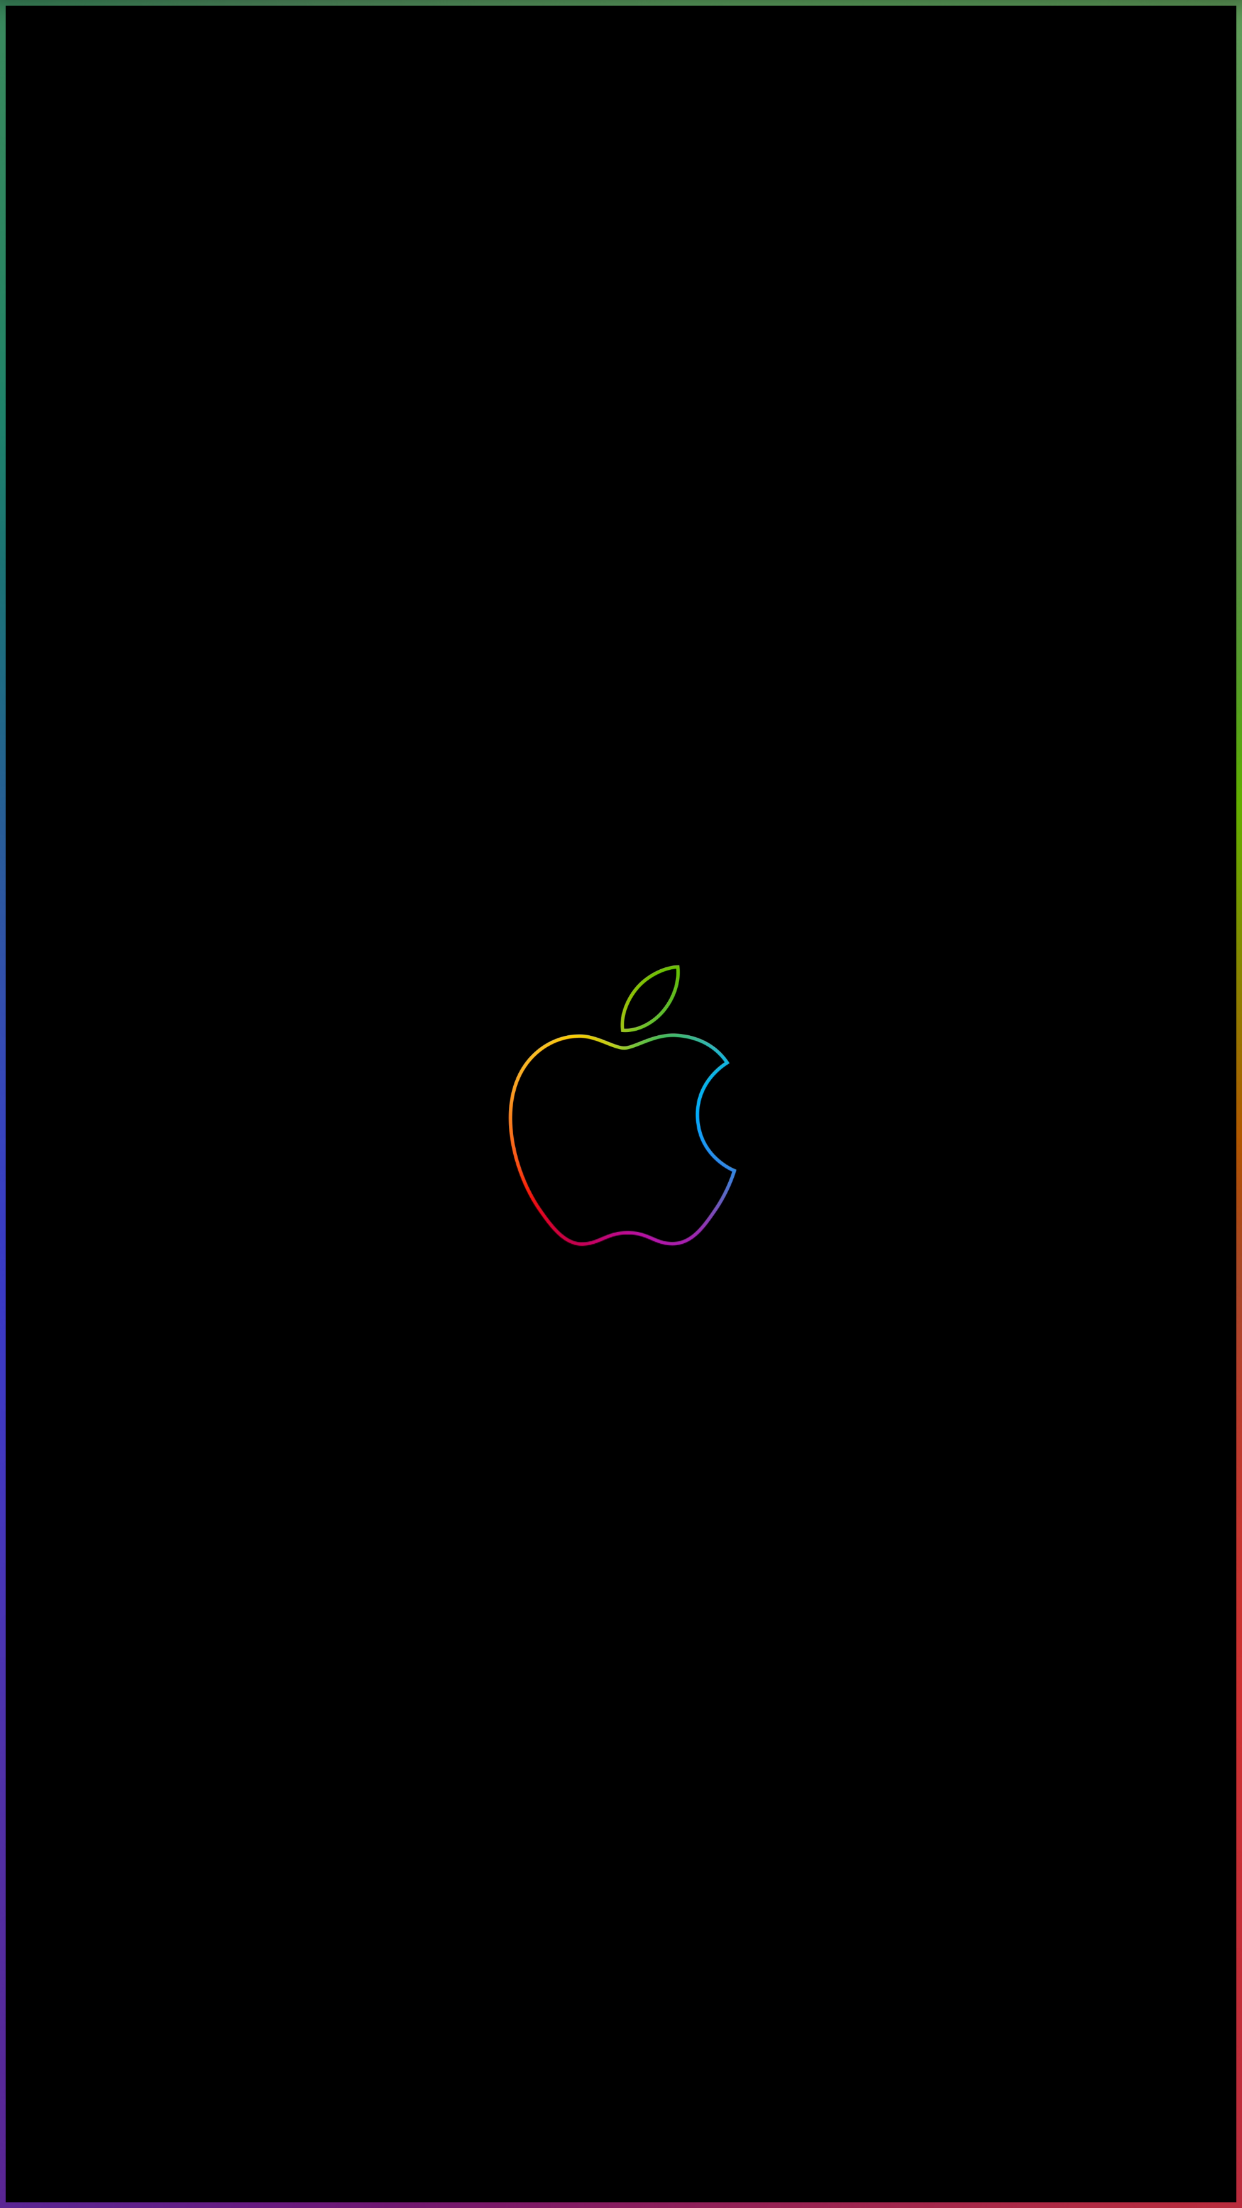 7 Rainbow Border Amp Apple Logohttps I Redd It 2obugiy1c5w11 Png Apple Logo Apple Logo Wallpaper Apple Logo Wallpaper Iphone